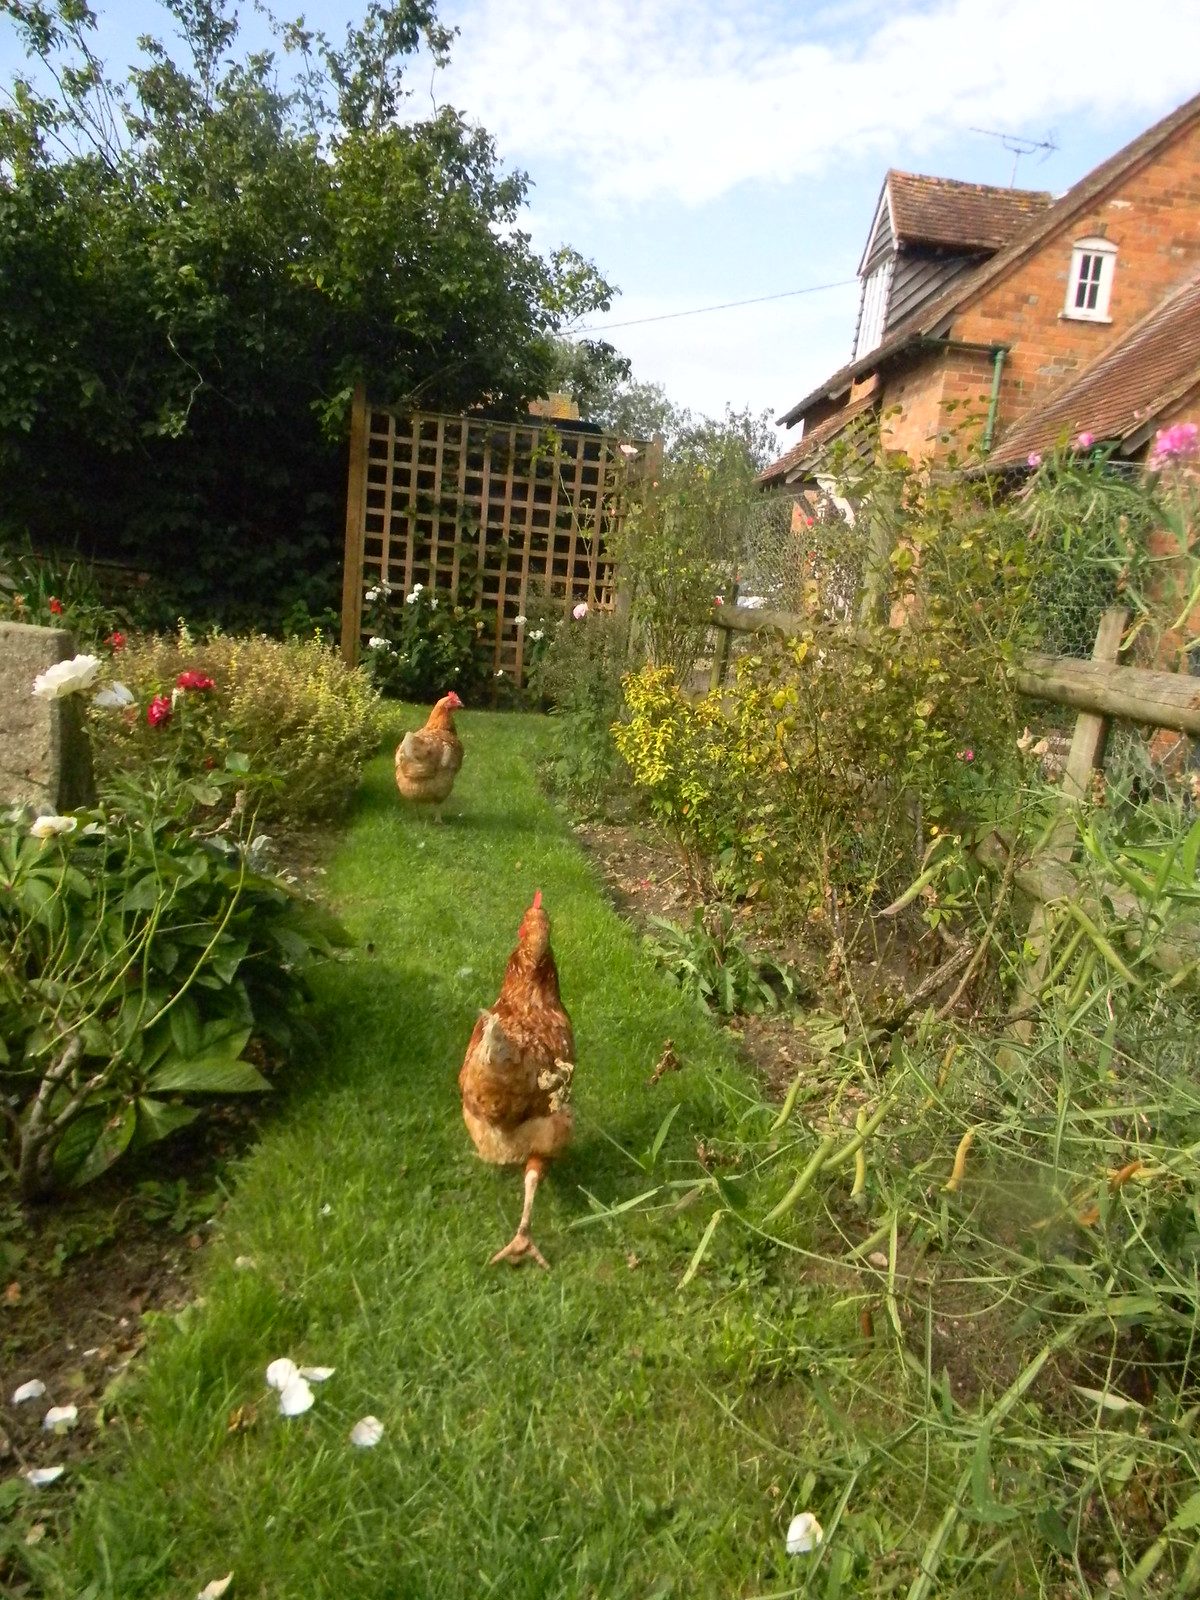 Chickens in the pub garden Goring Circular The Bell, Aldworth